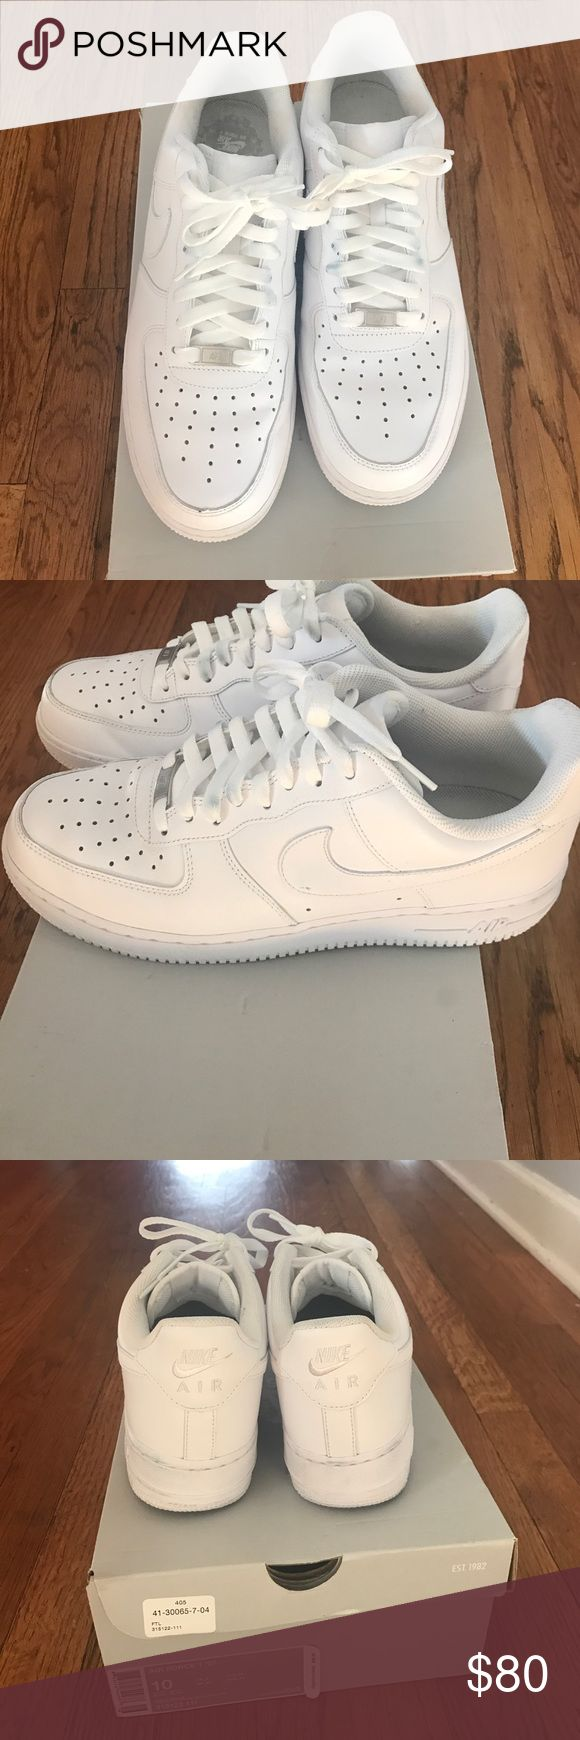 Nike Air Force One Classic Nike Air Force One. Worn only once! Nike Shoes Sneakers